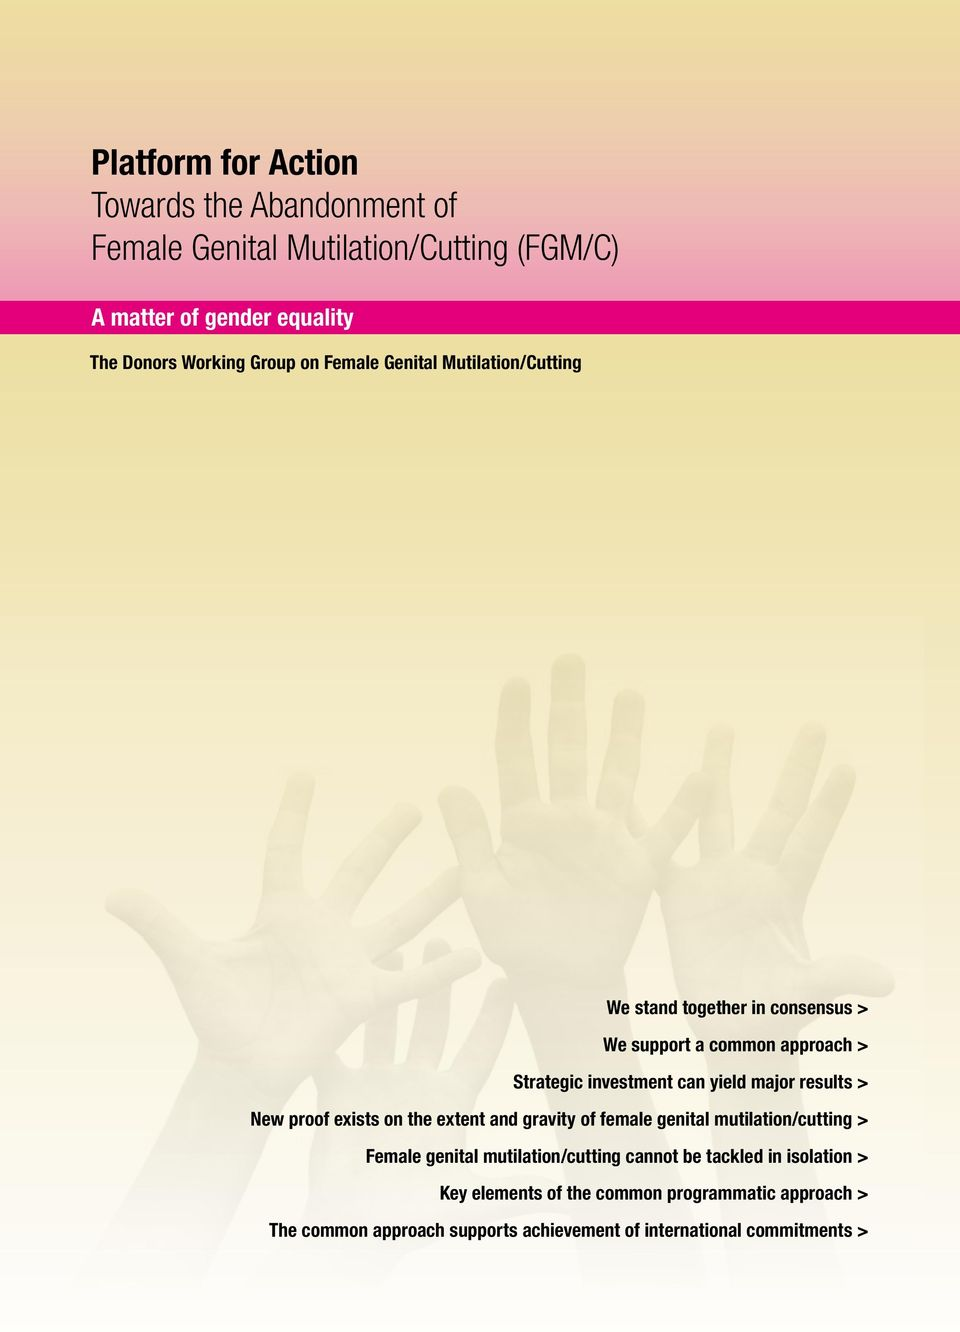 major results > New proof exists on the extent and gravity of female genital mutilation/cutting > Female genital mutilation/cutting cannot